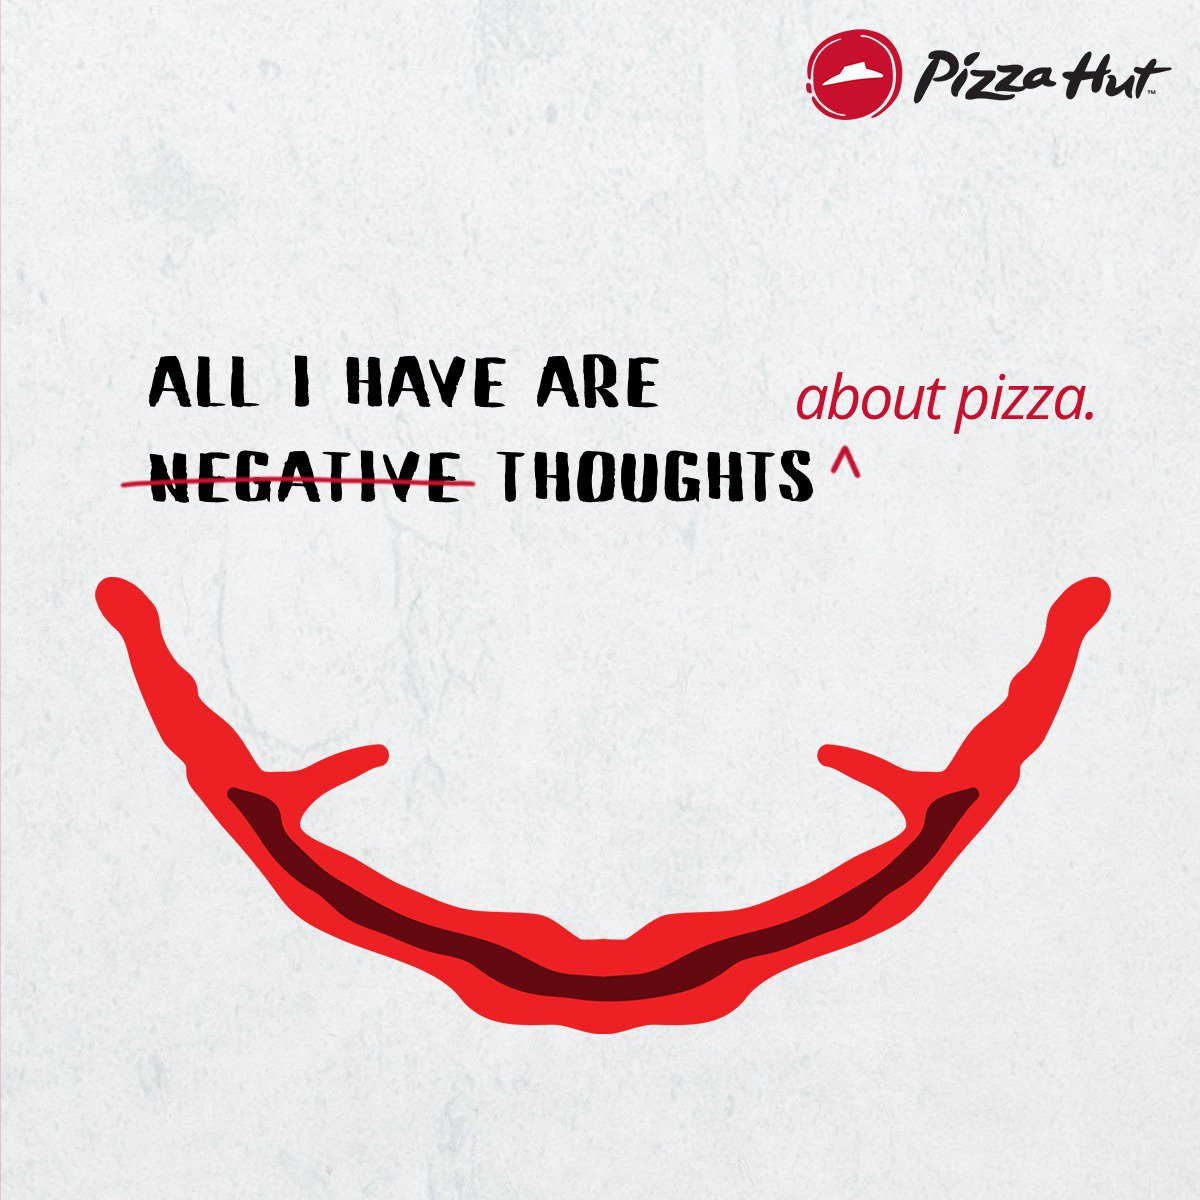 The joker has his way of making people smile and we have ours TastiestPizzasAt99 Joker https t.co asHcZbMblW